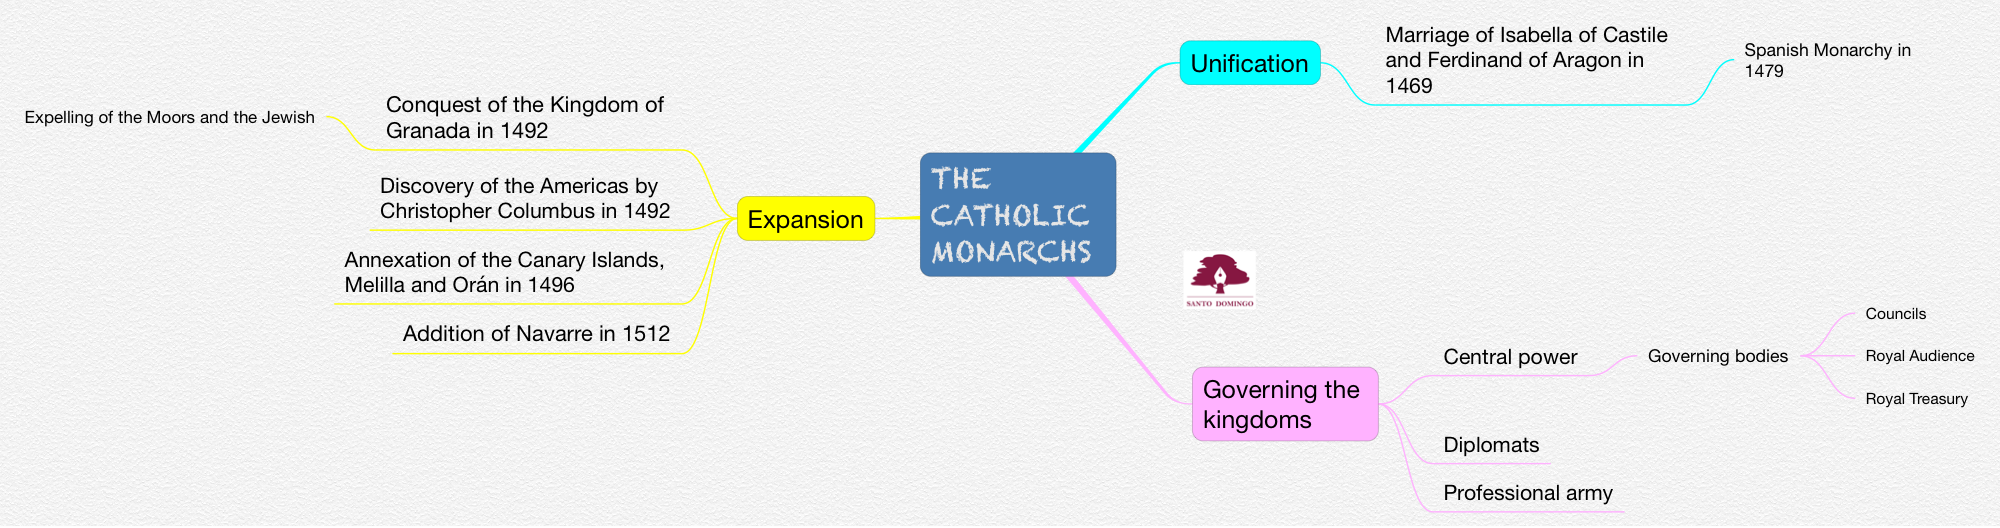 SS_THE CATHOLIC MONARCHS_5